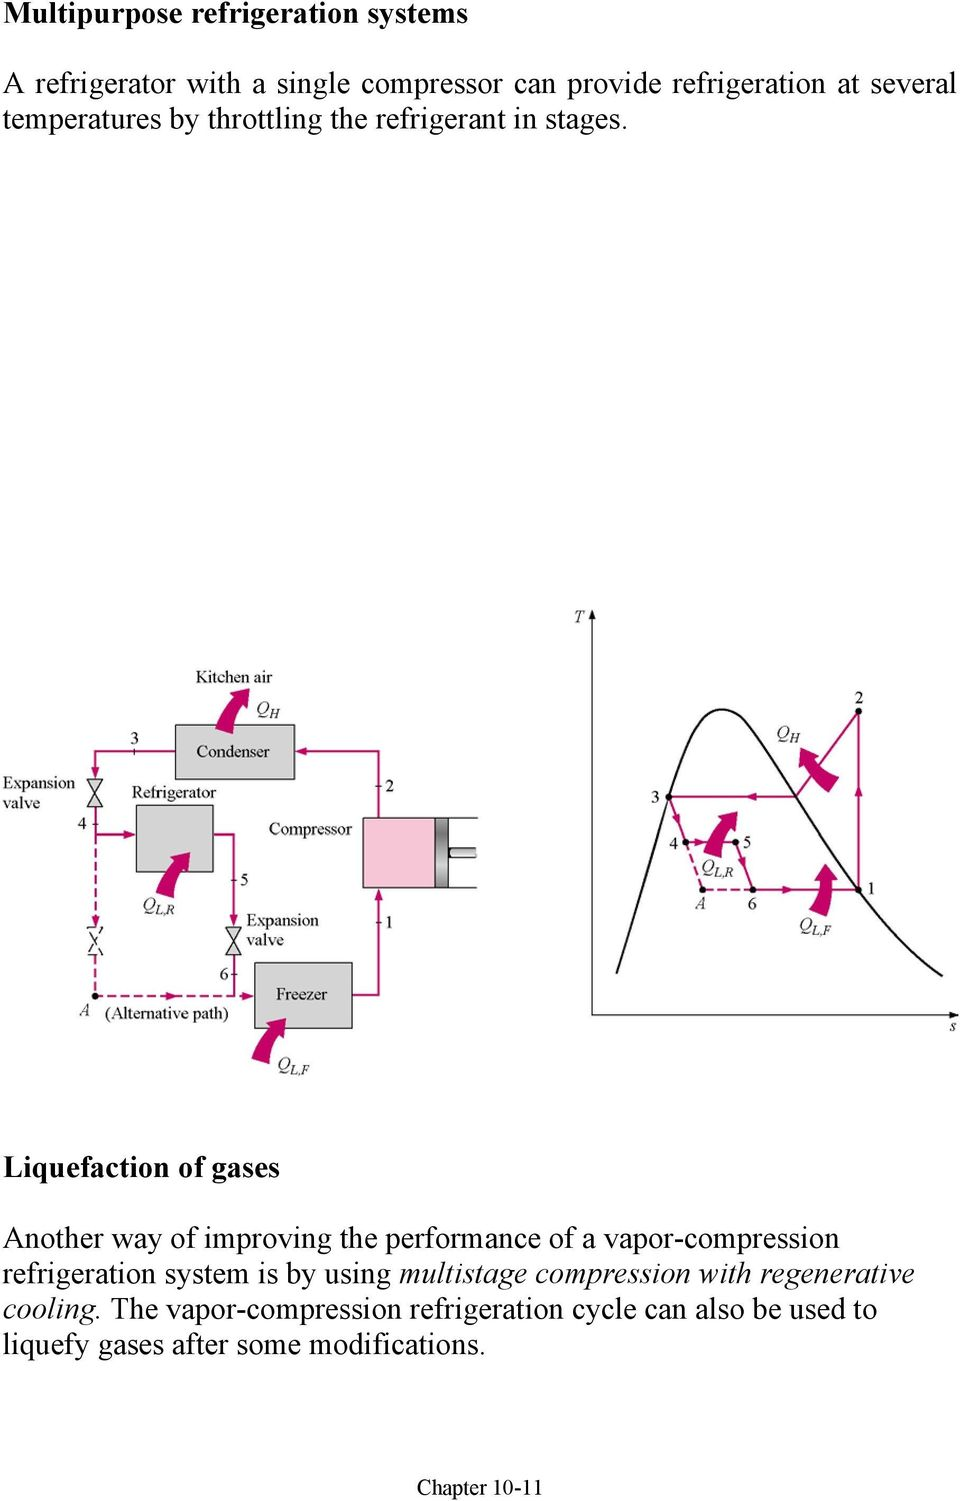 medium resolution of iquefaction of gases anoter way of improving te performance of a vapor compression refrigeration system